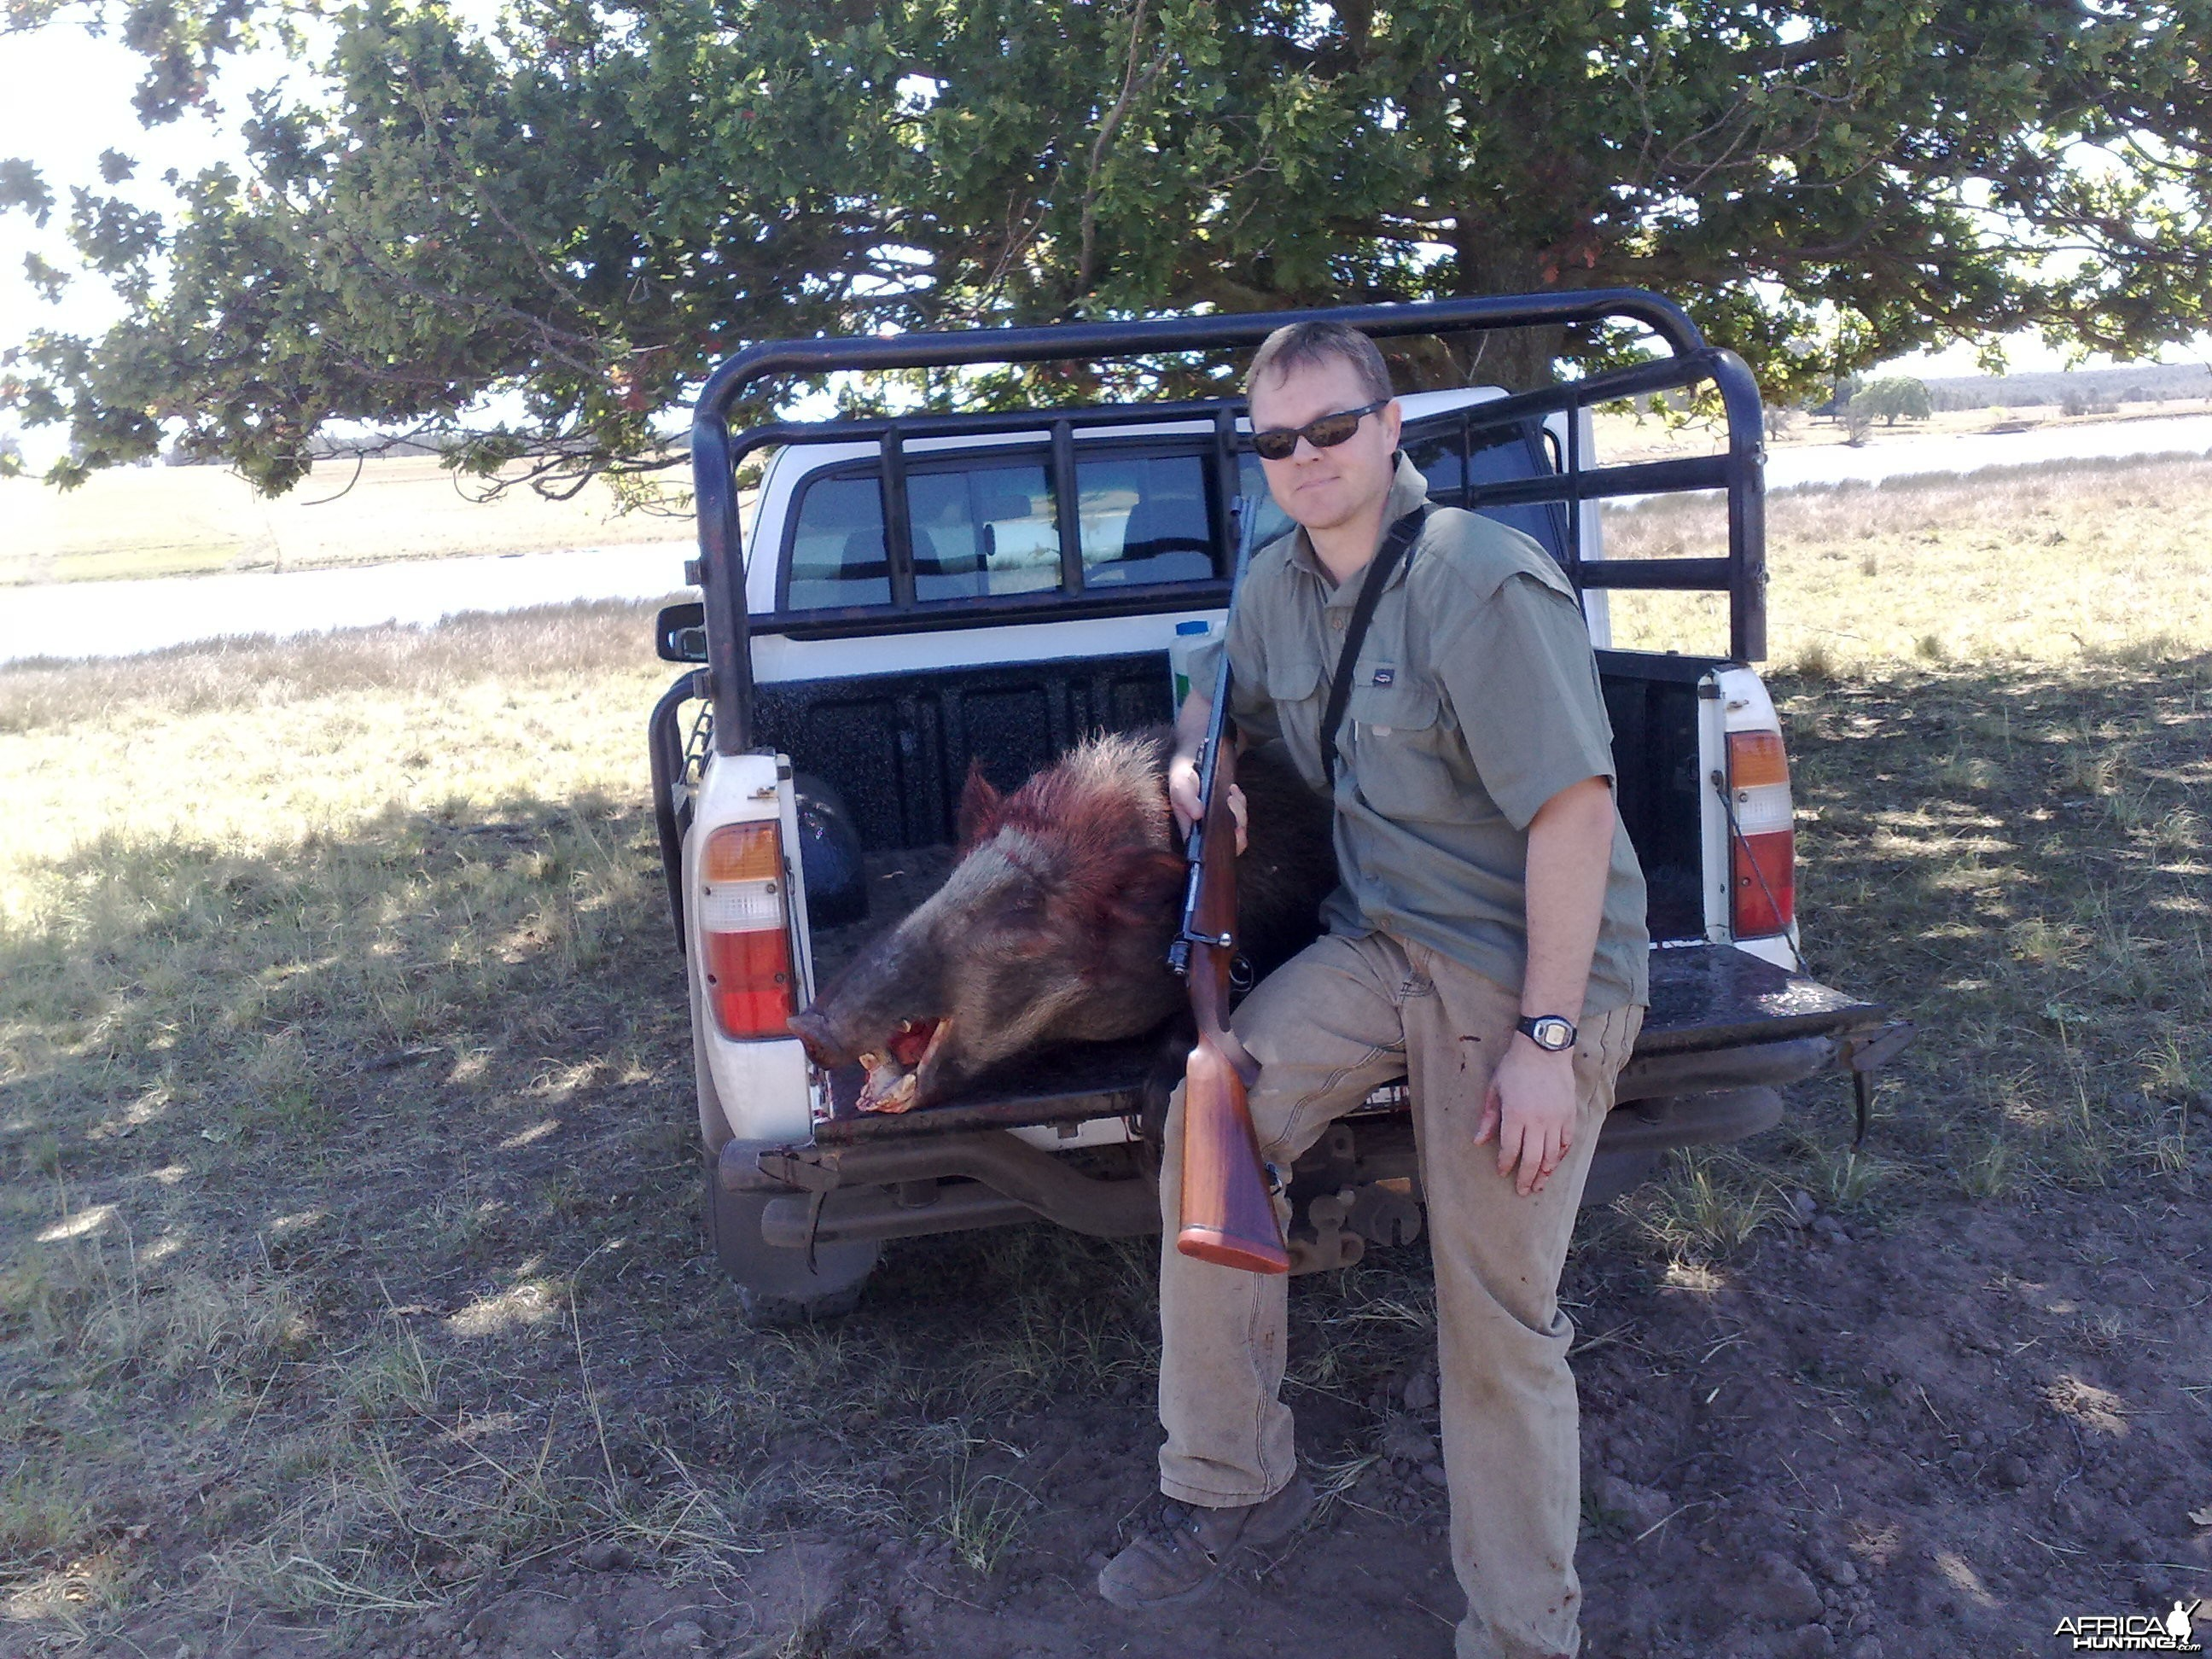 Bushpig hunted in Mpumalanga South Africa